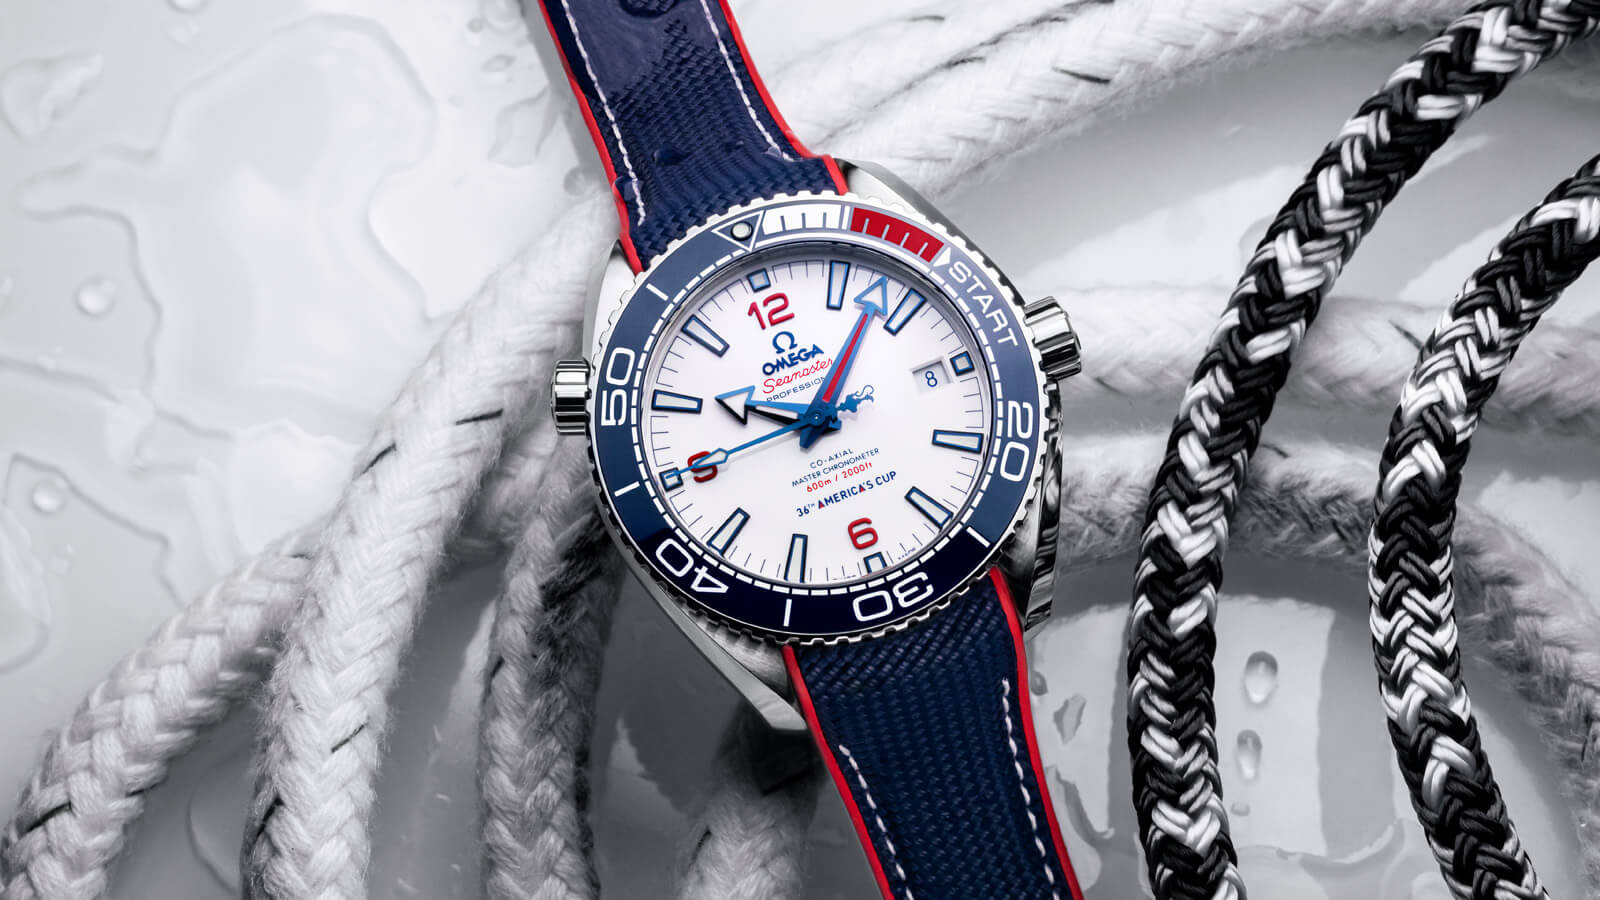 Seamaster Planet Ocean 600 M Planet Ocean 600M Omega Co‑Axial Master Chronometer 43,5 mm - 215.32.43.21.04.001 - Anzeigen 3